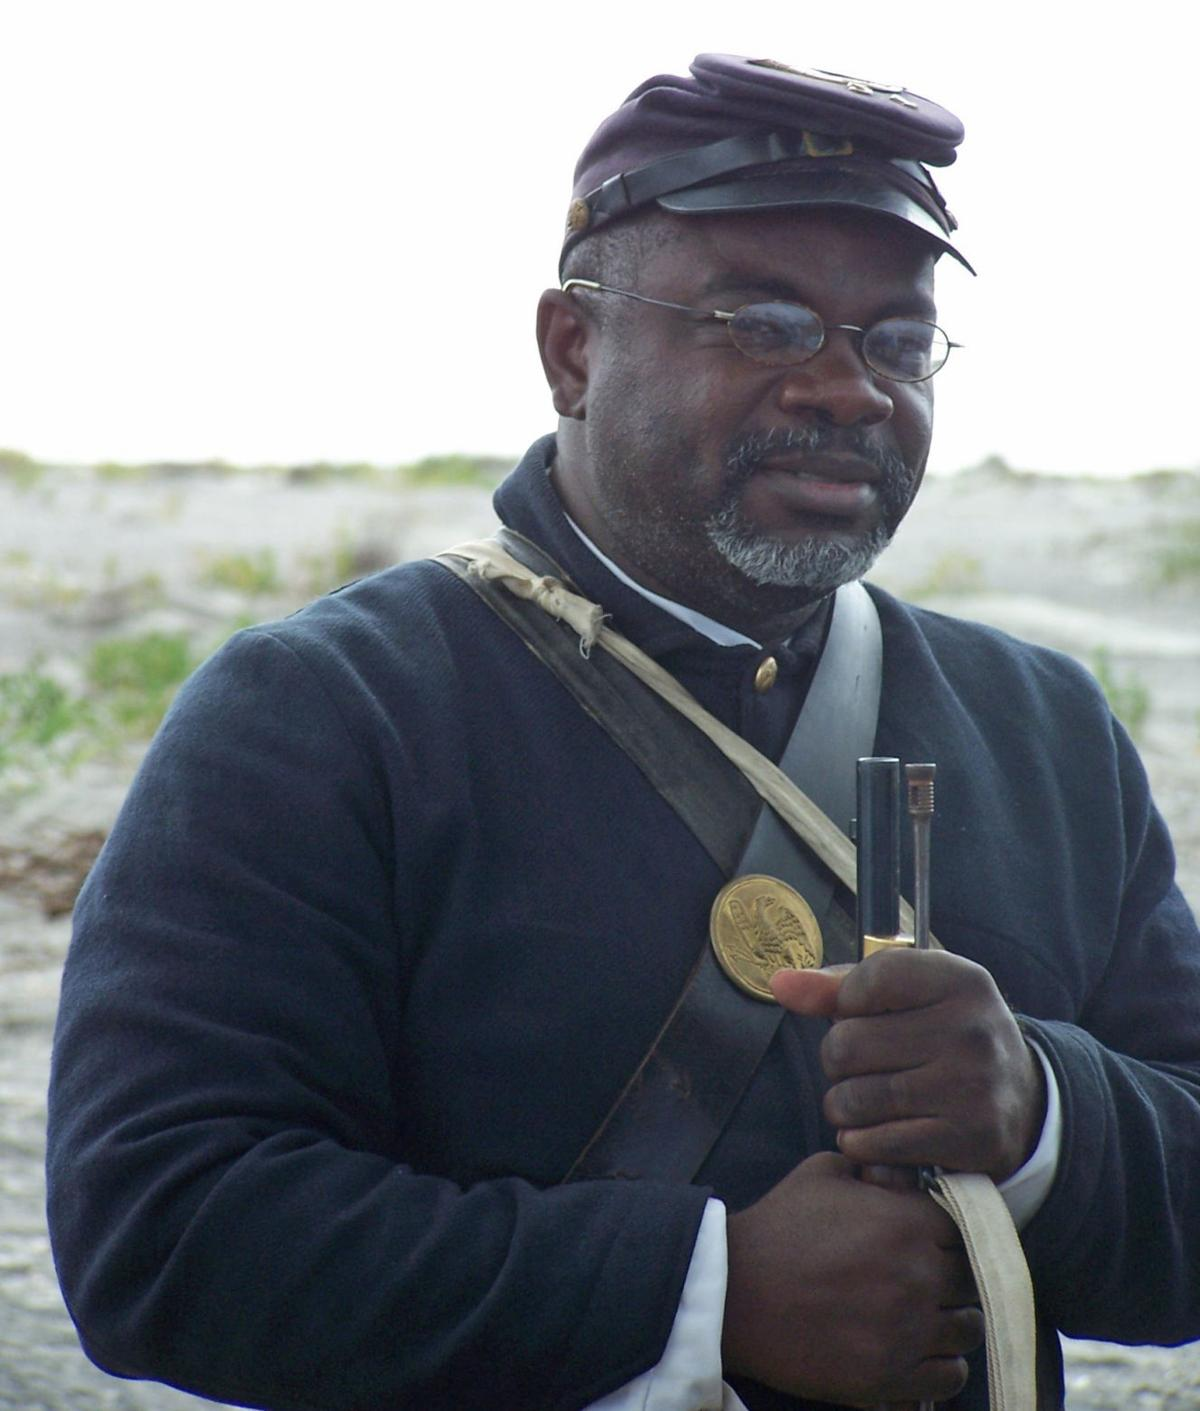 Lecture to focus on 54th Massachusetts Infantry